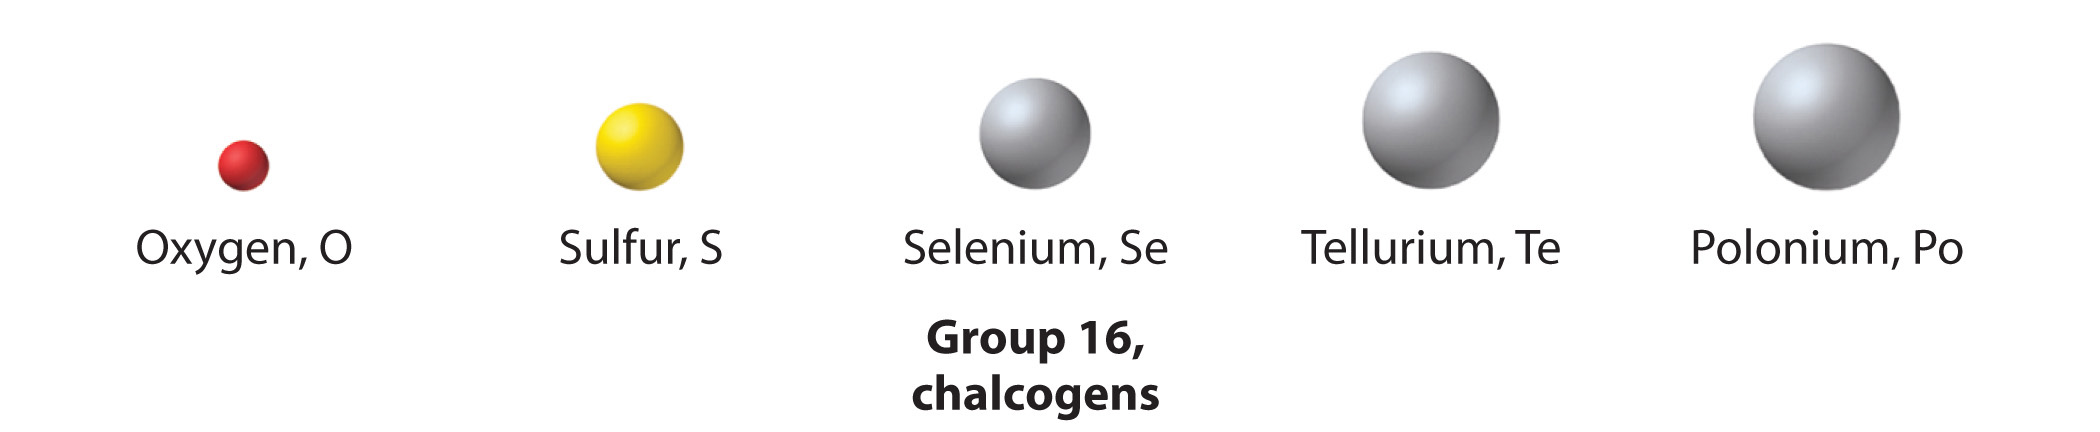 General chemistry principles patterns and applications 10 group 16 the chalcogens gamestrikefo Choice Image